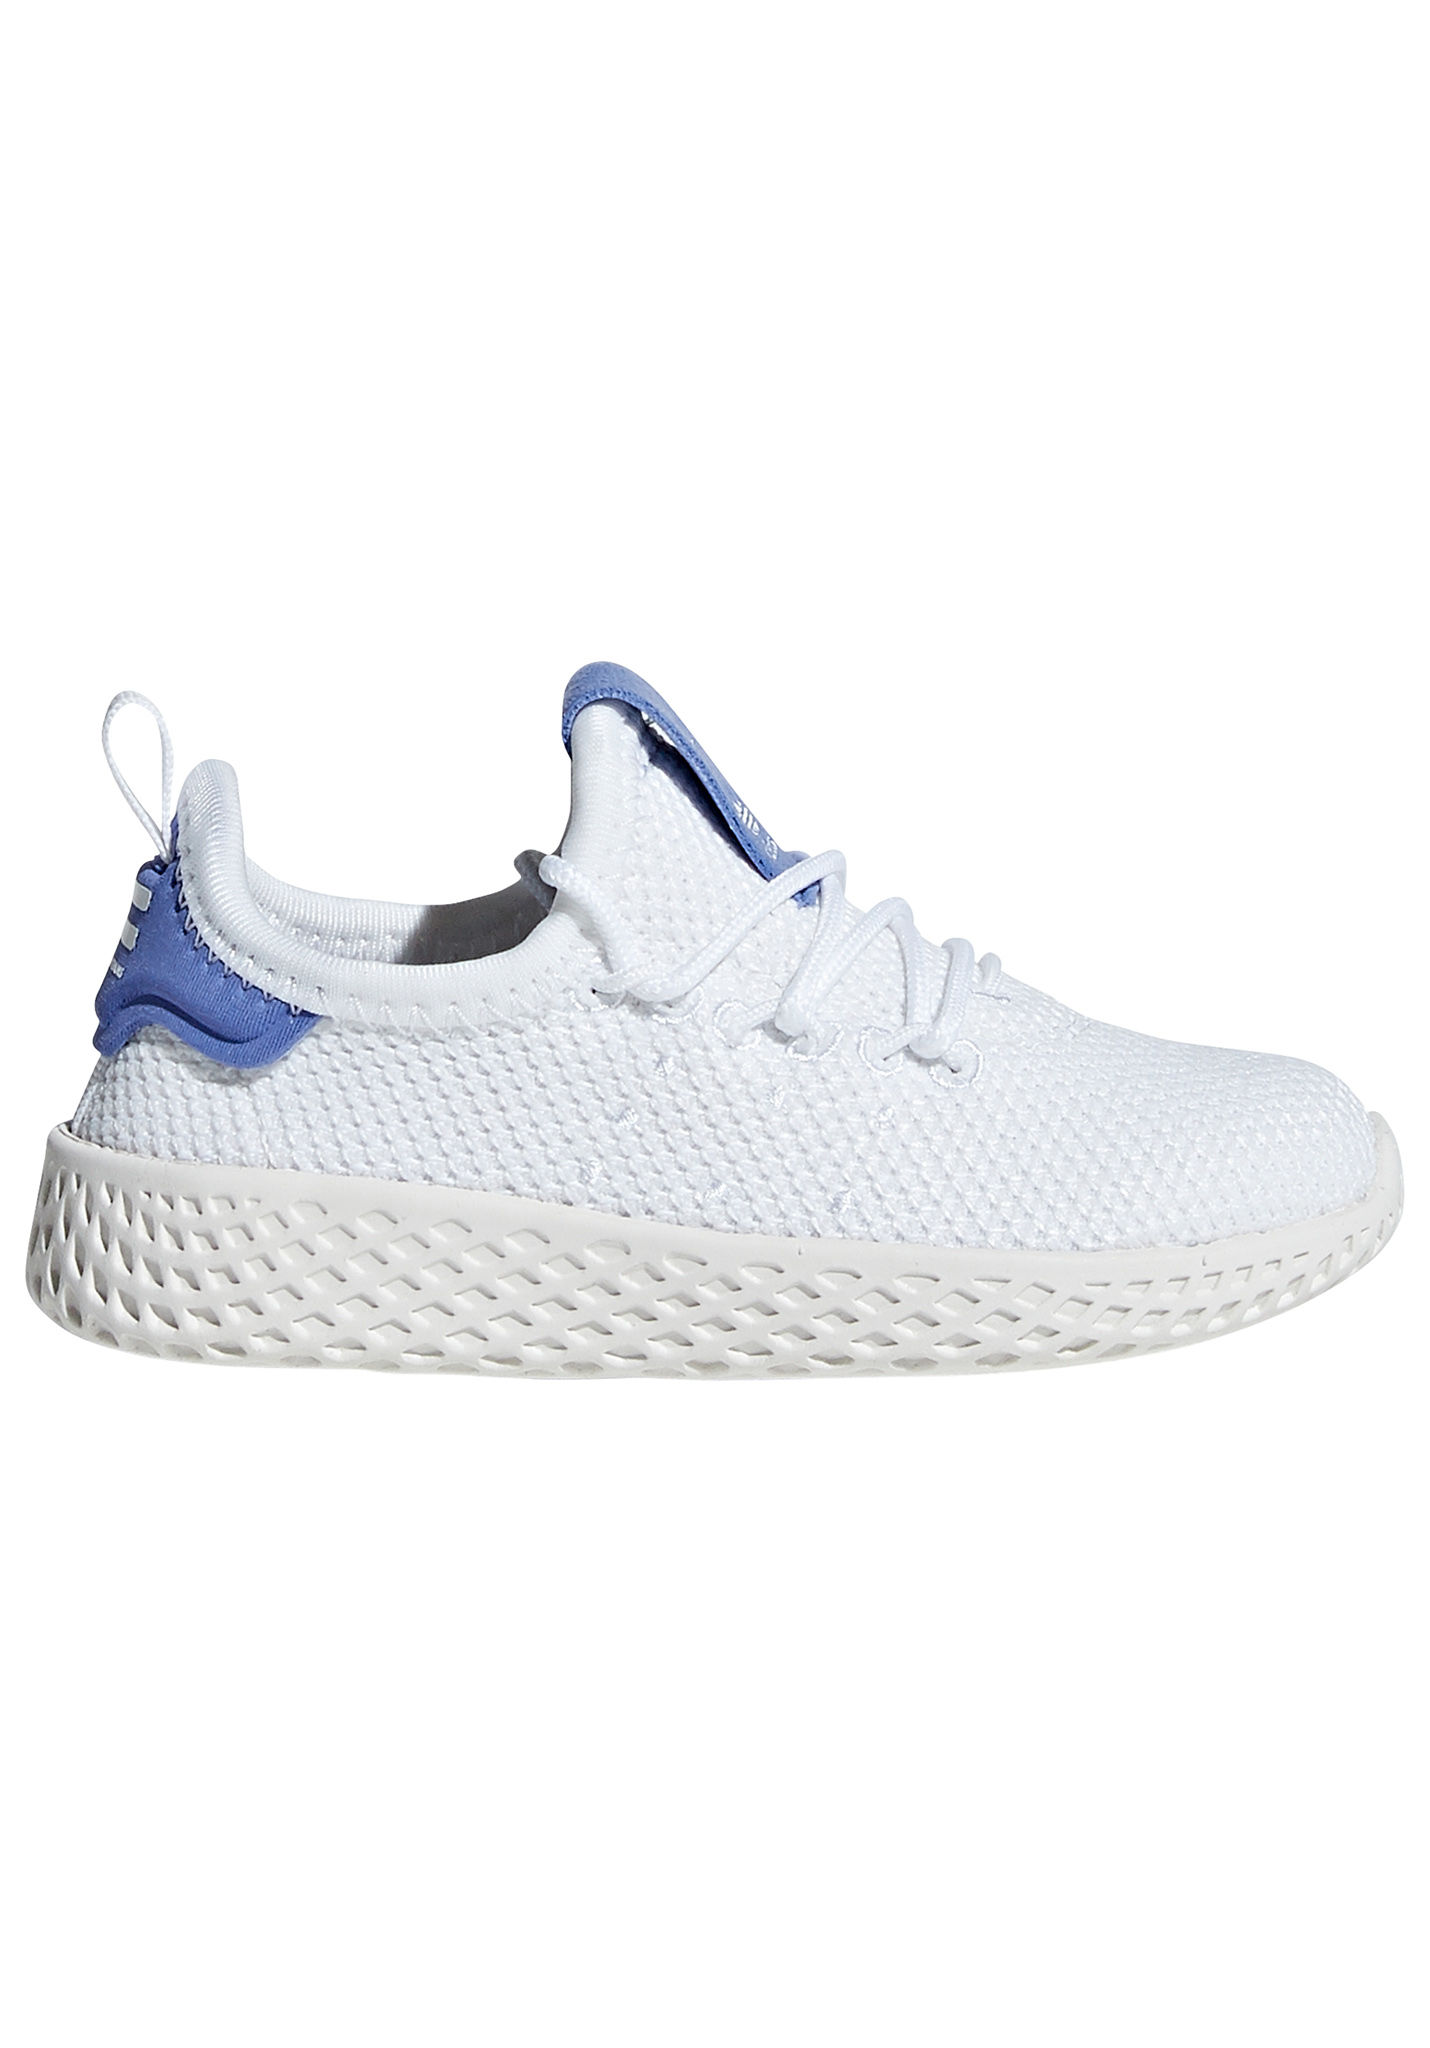 6f2333e62d8da ADIDAS ORIGINALS Pharrell Williams Tennis Hu - Sneakers - White - Planet  Sports